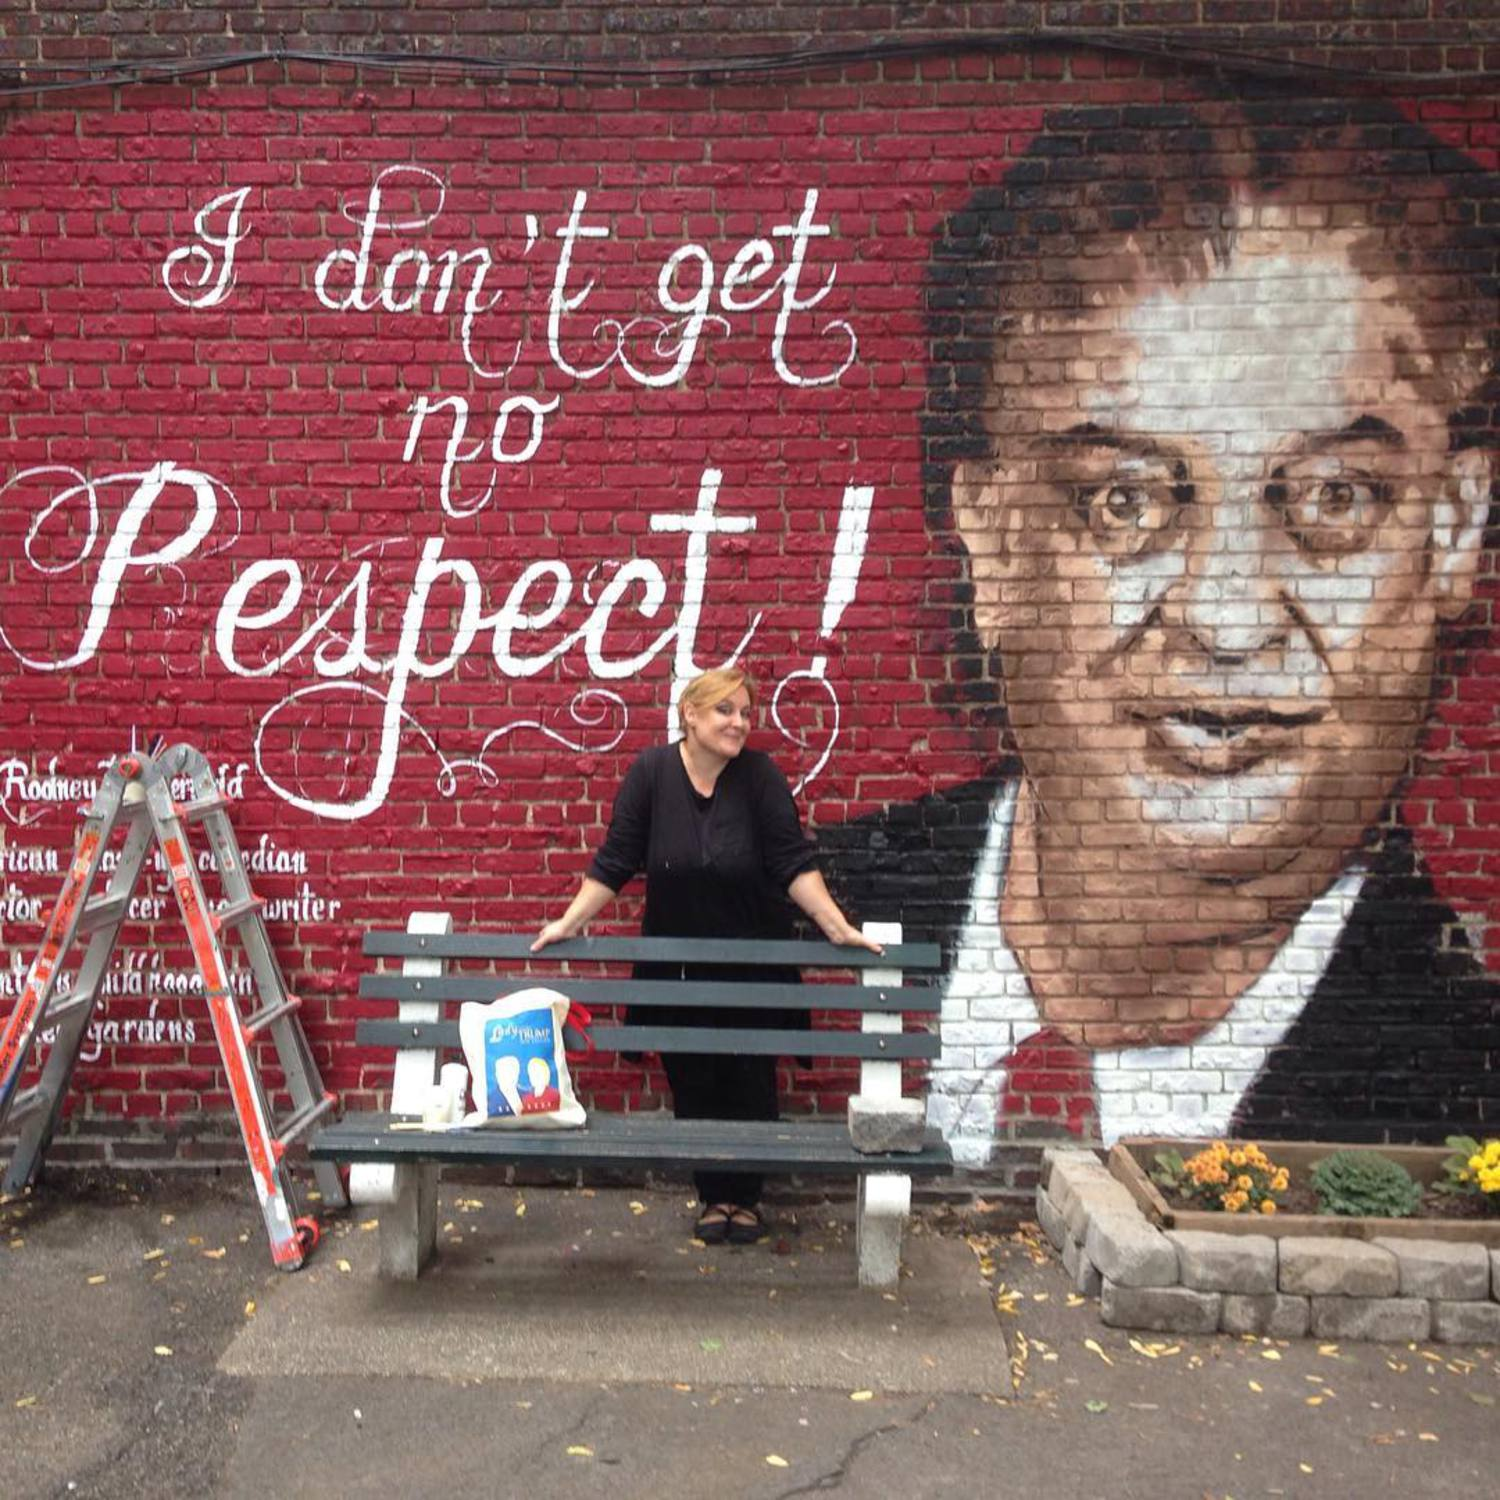 Almost done! #rodneydangerfield #mural in the making #queens #kewgardens #literarypaitings @literarypaintings @501seestreets